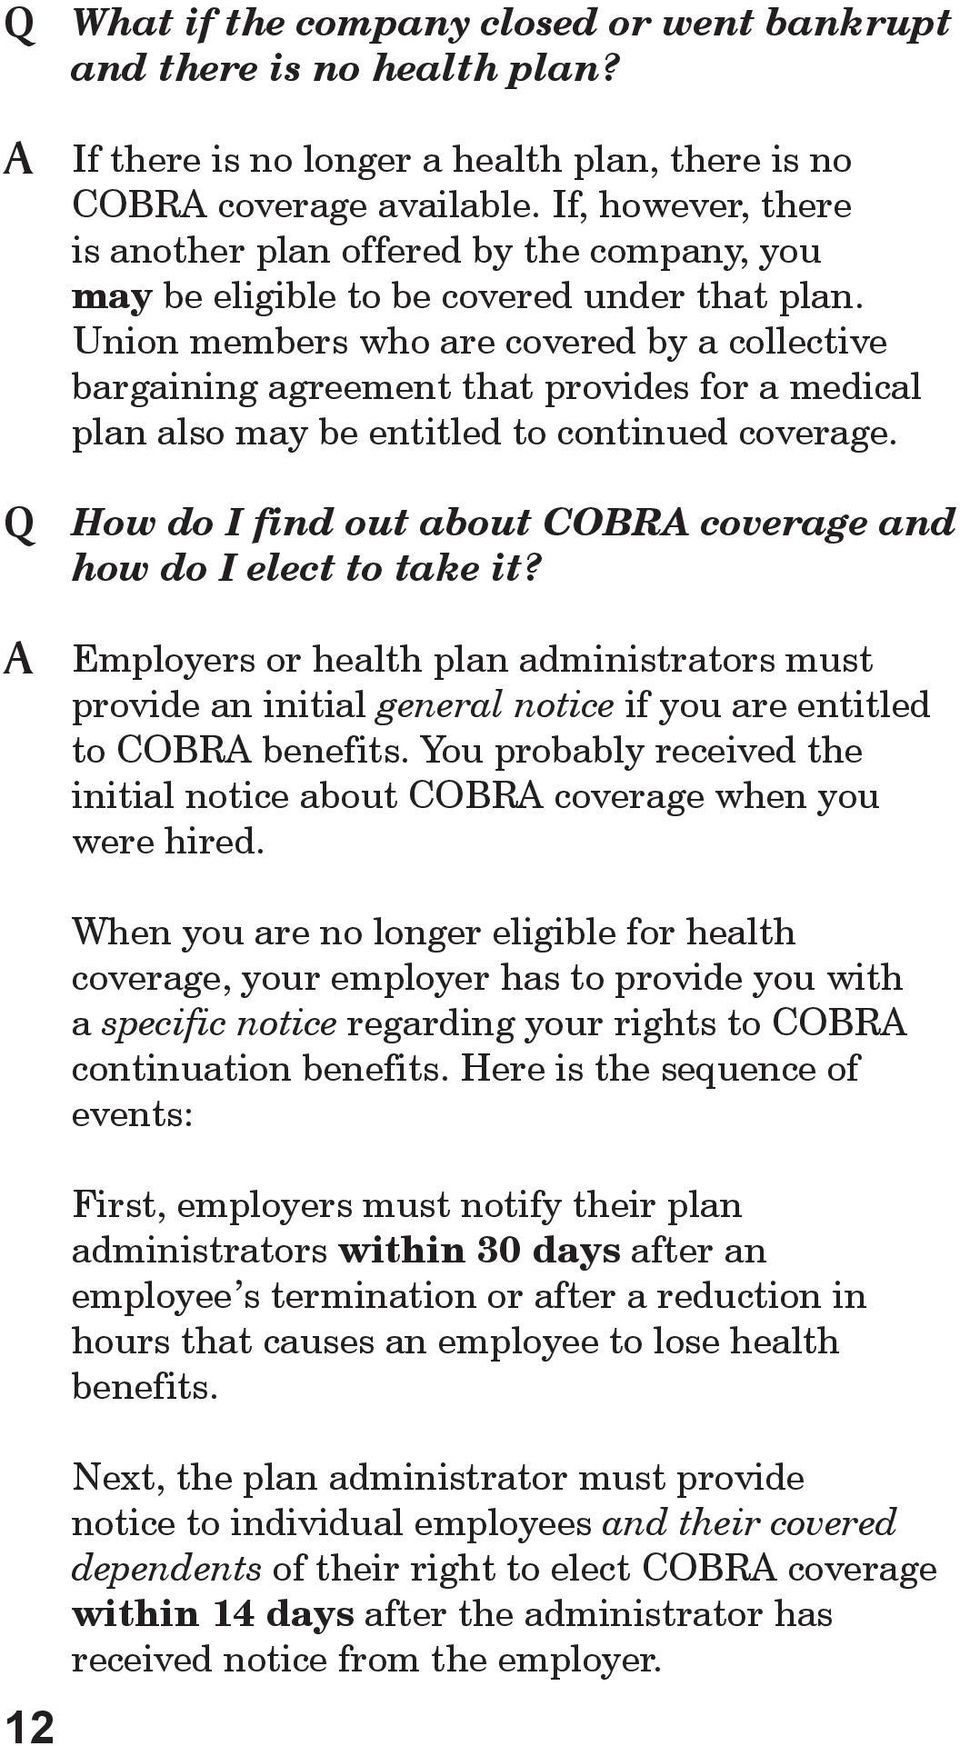 Union members who are covered by a collective bargaining agreement that provides for a medical plan also may be entitled to continued coverage.